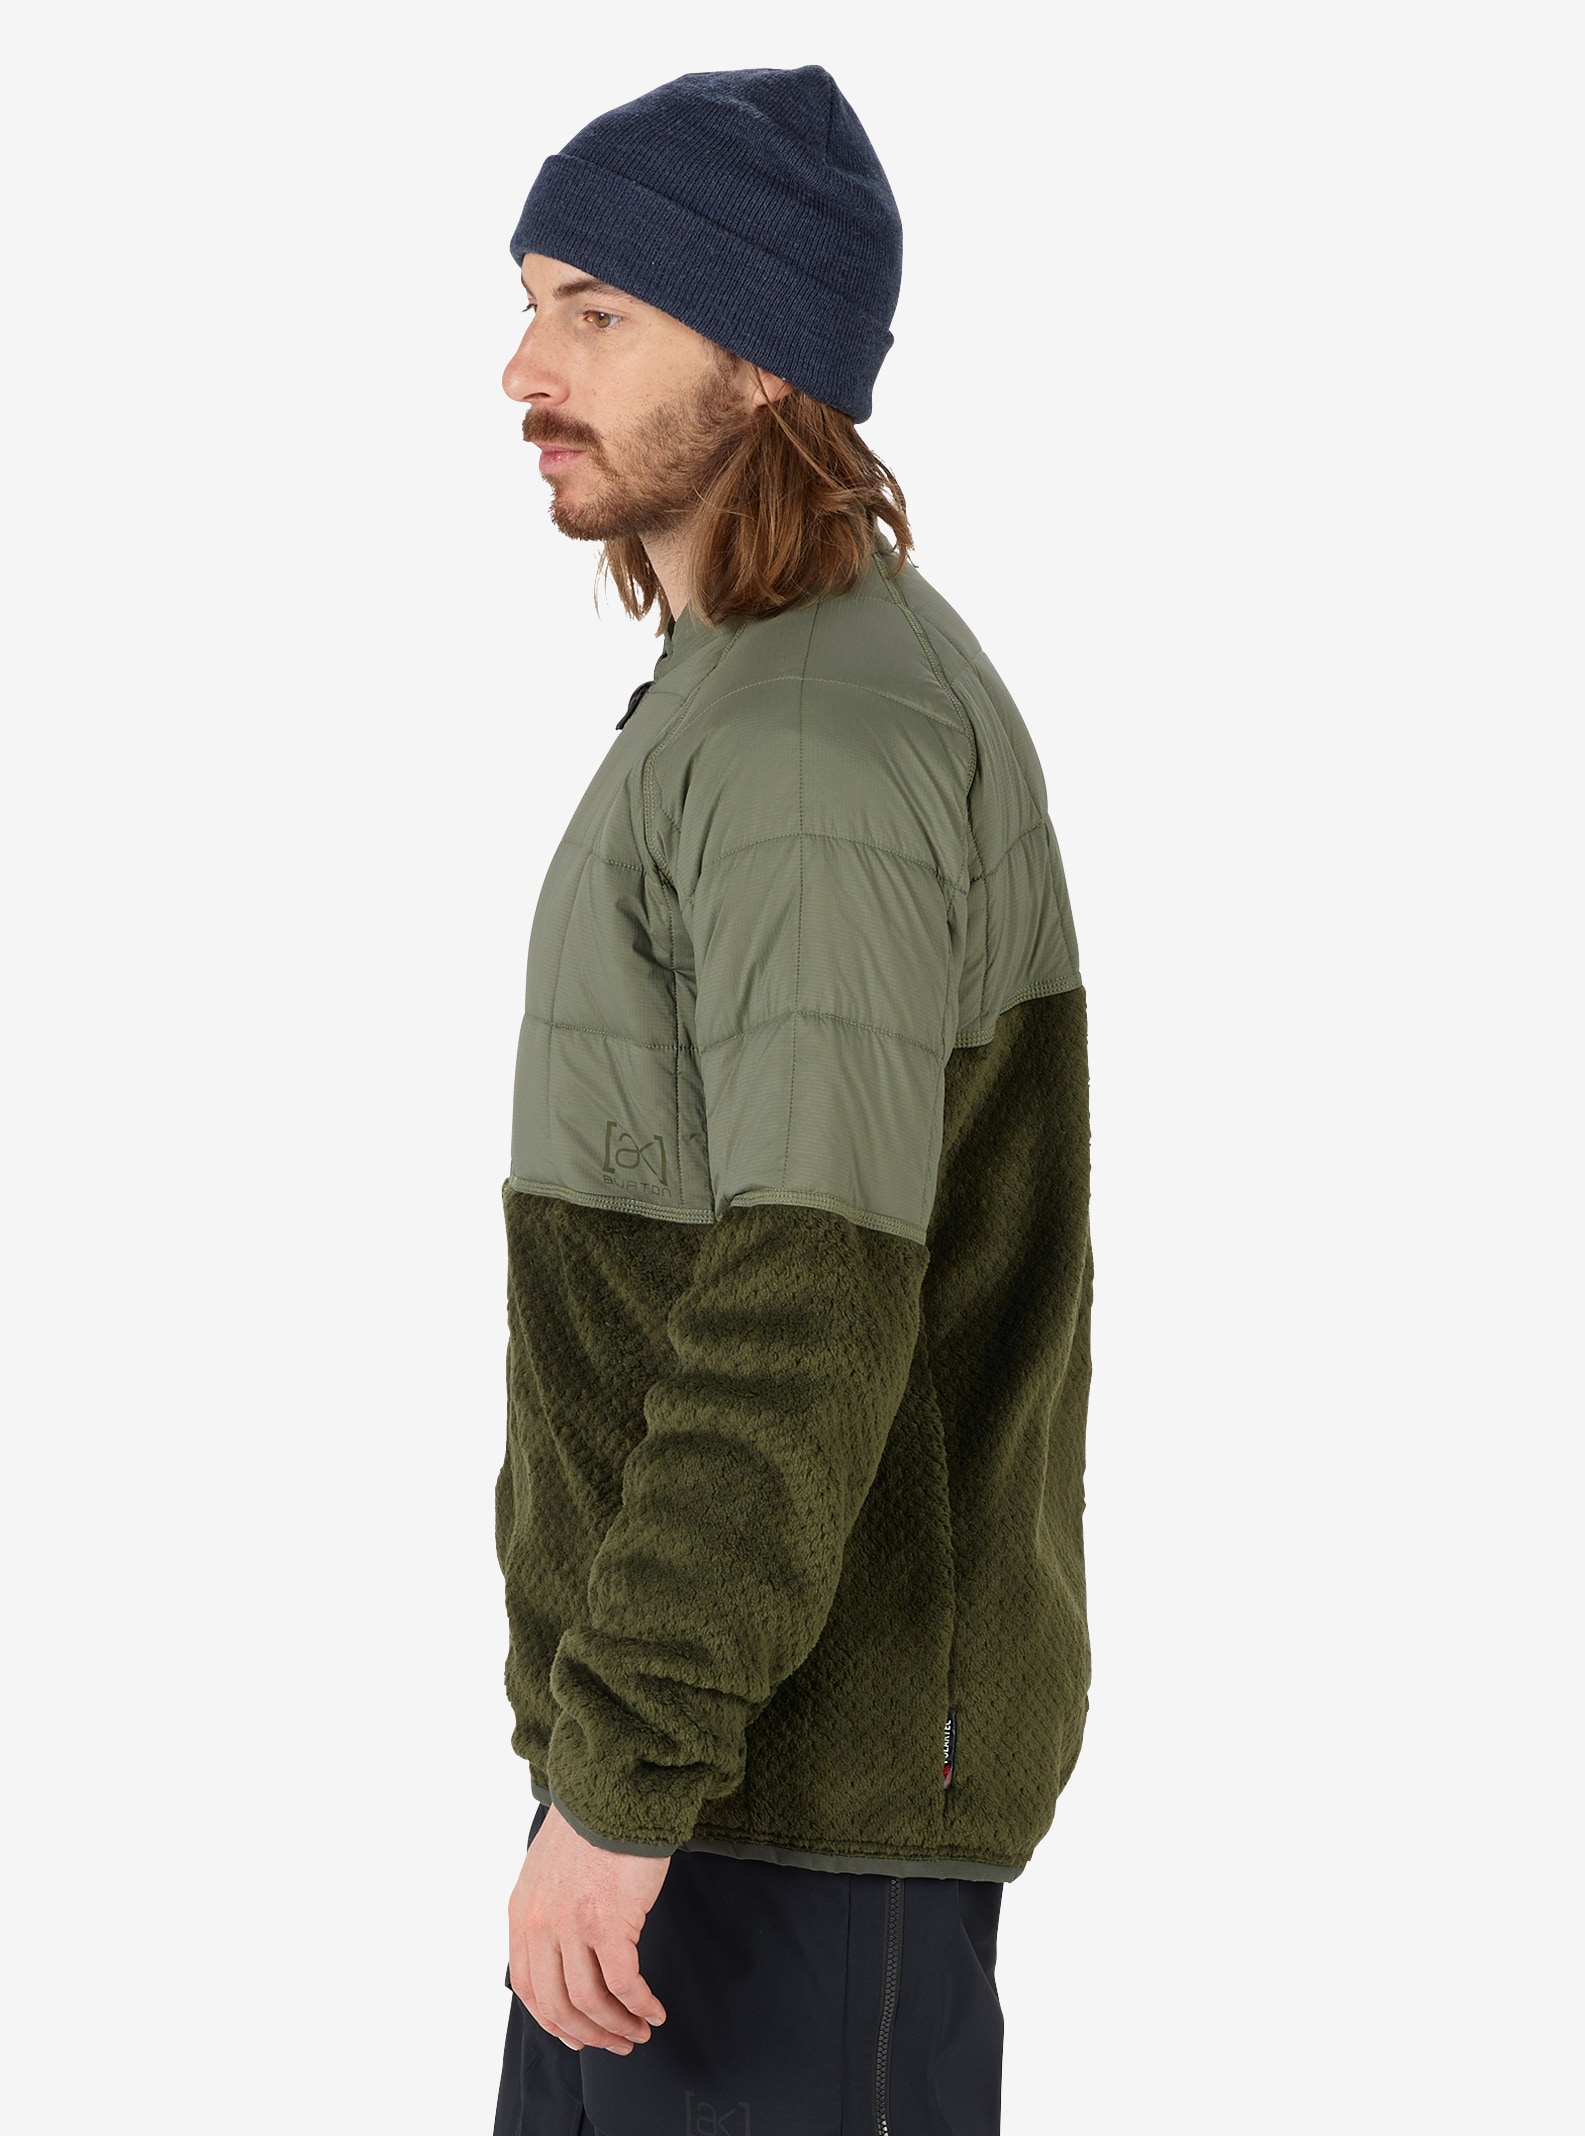 Men's Burton [ak] Hybrid Insulator Jacket shown in Dusty Olive / Forest Night